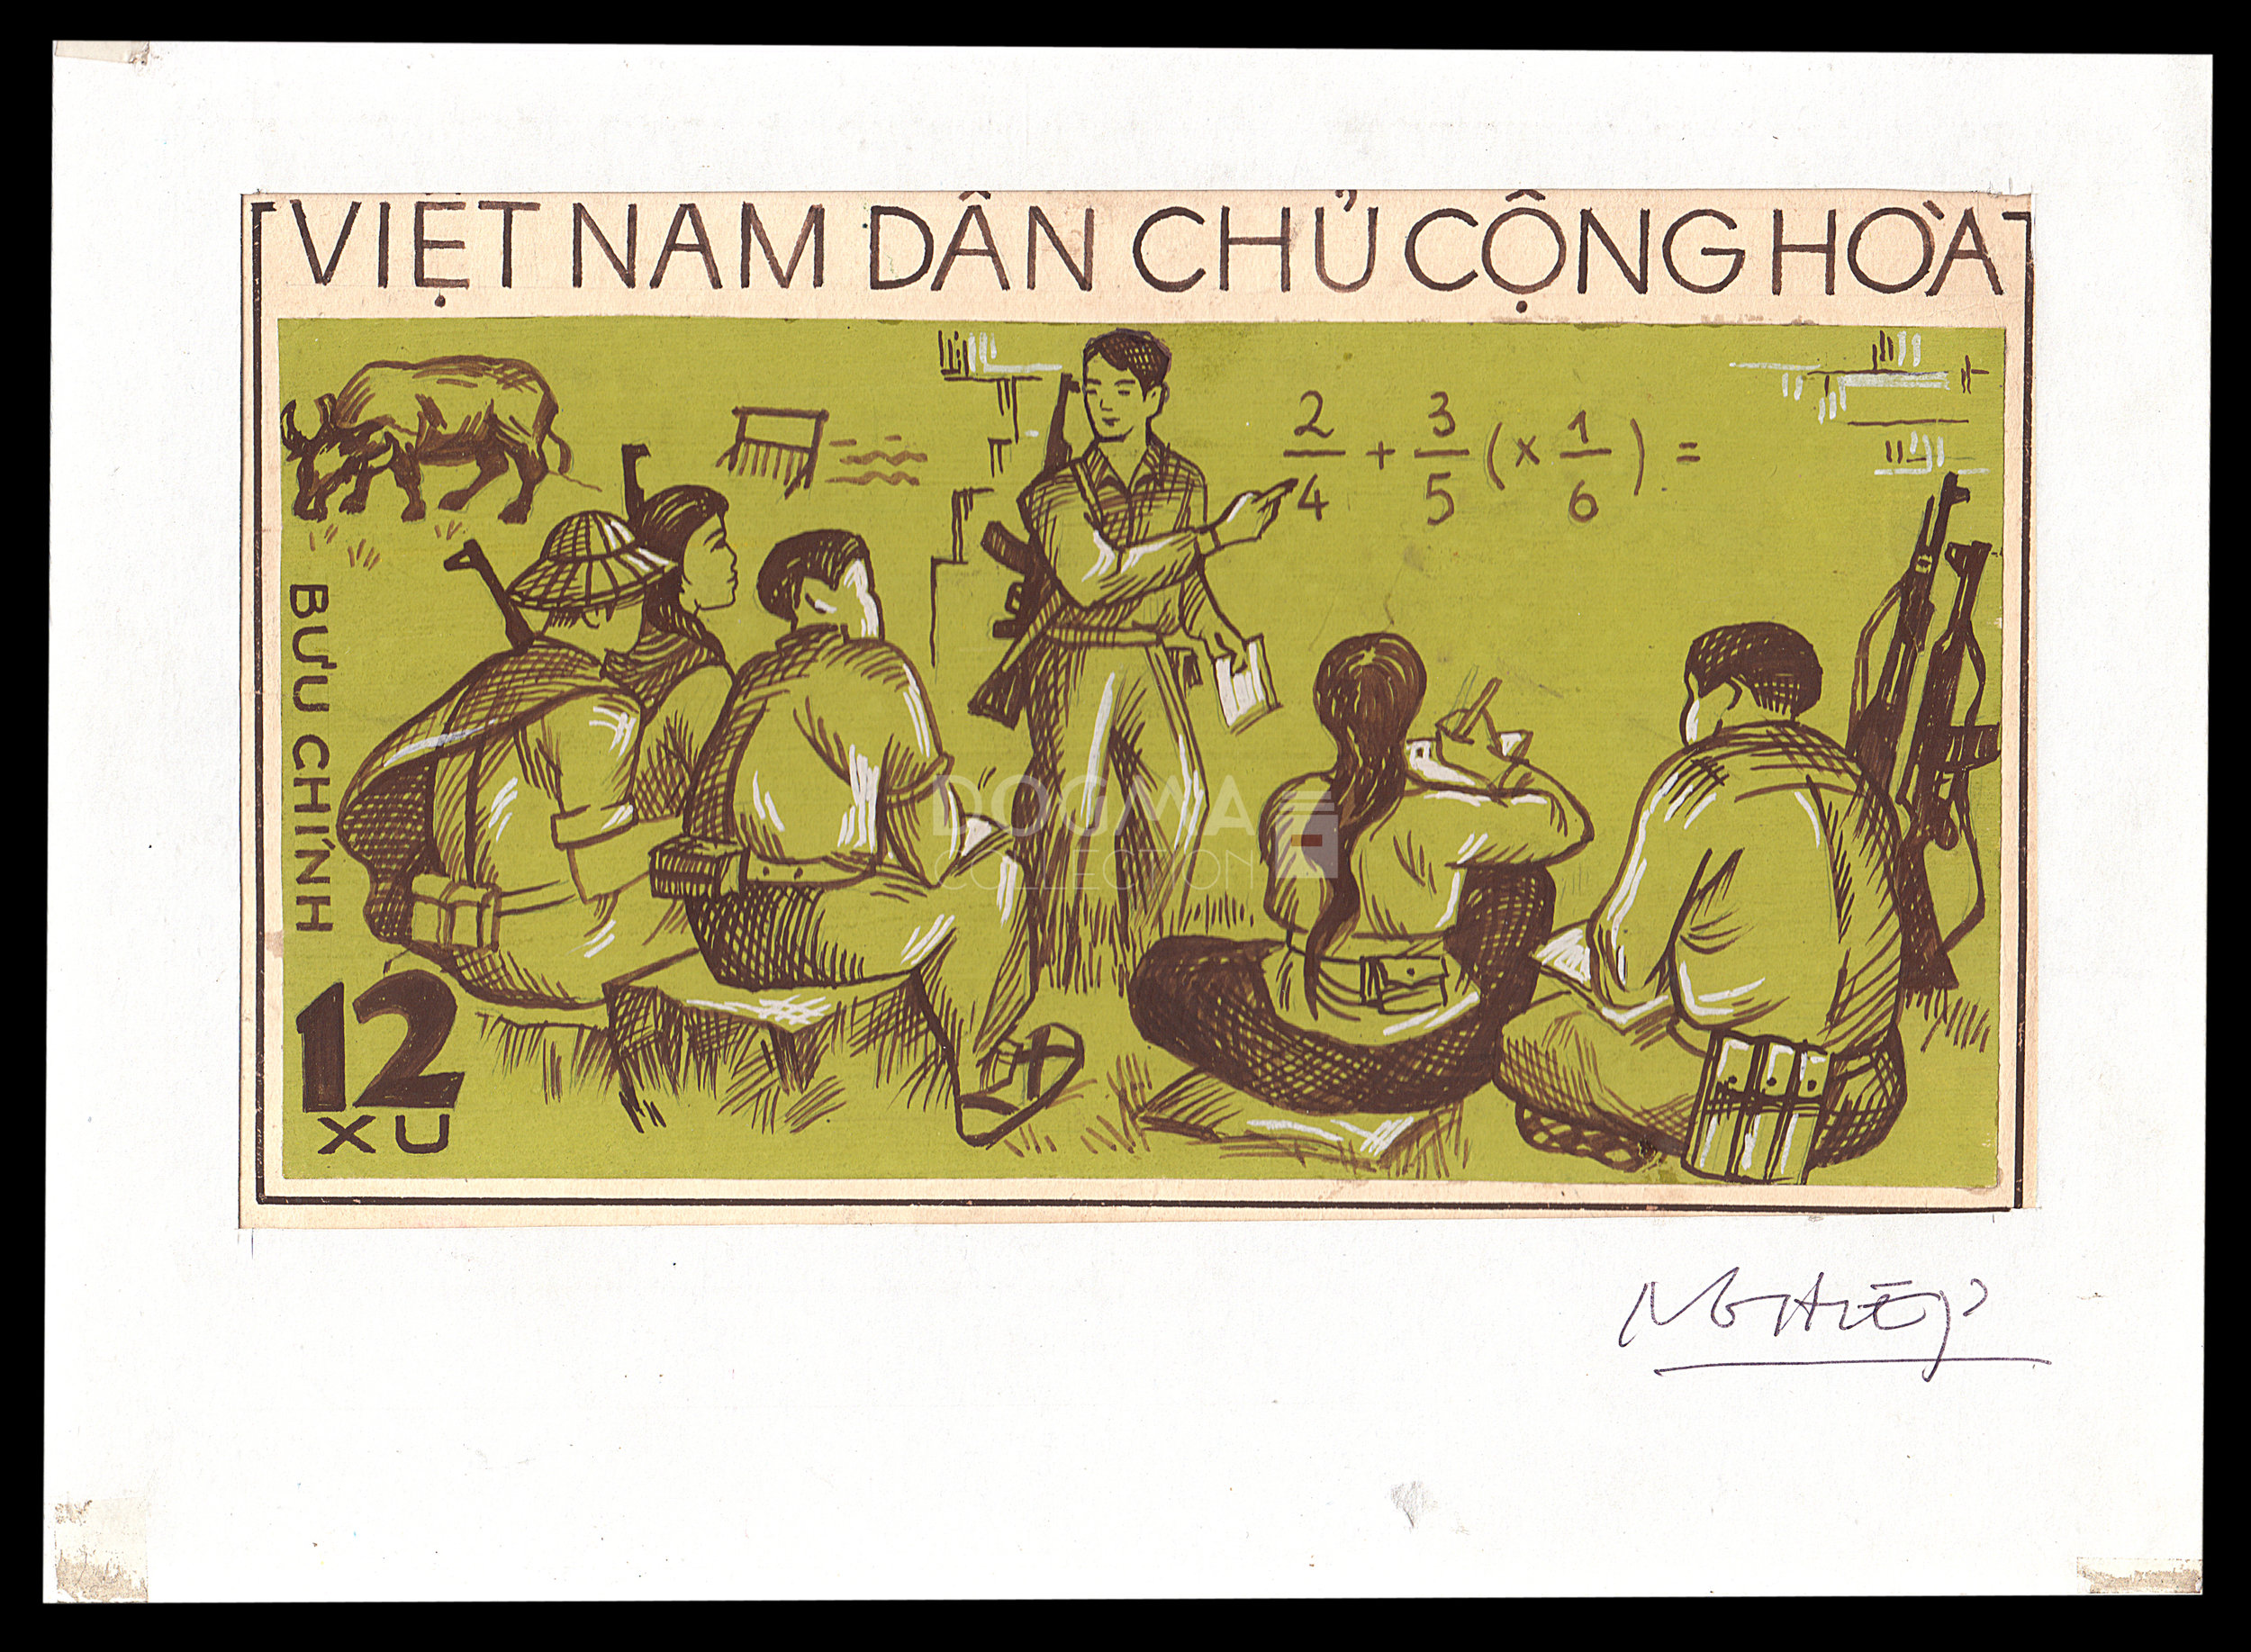 Democratic Republican Vietnam